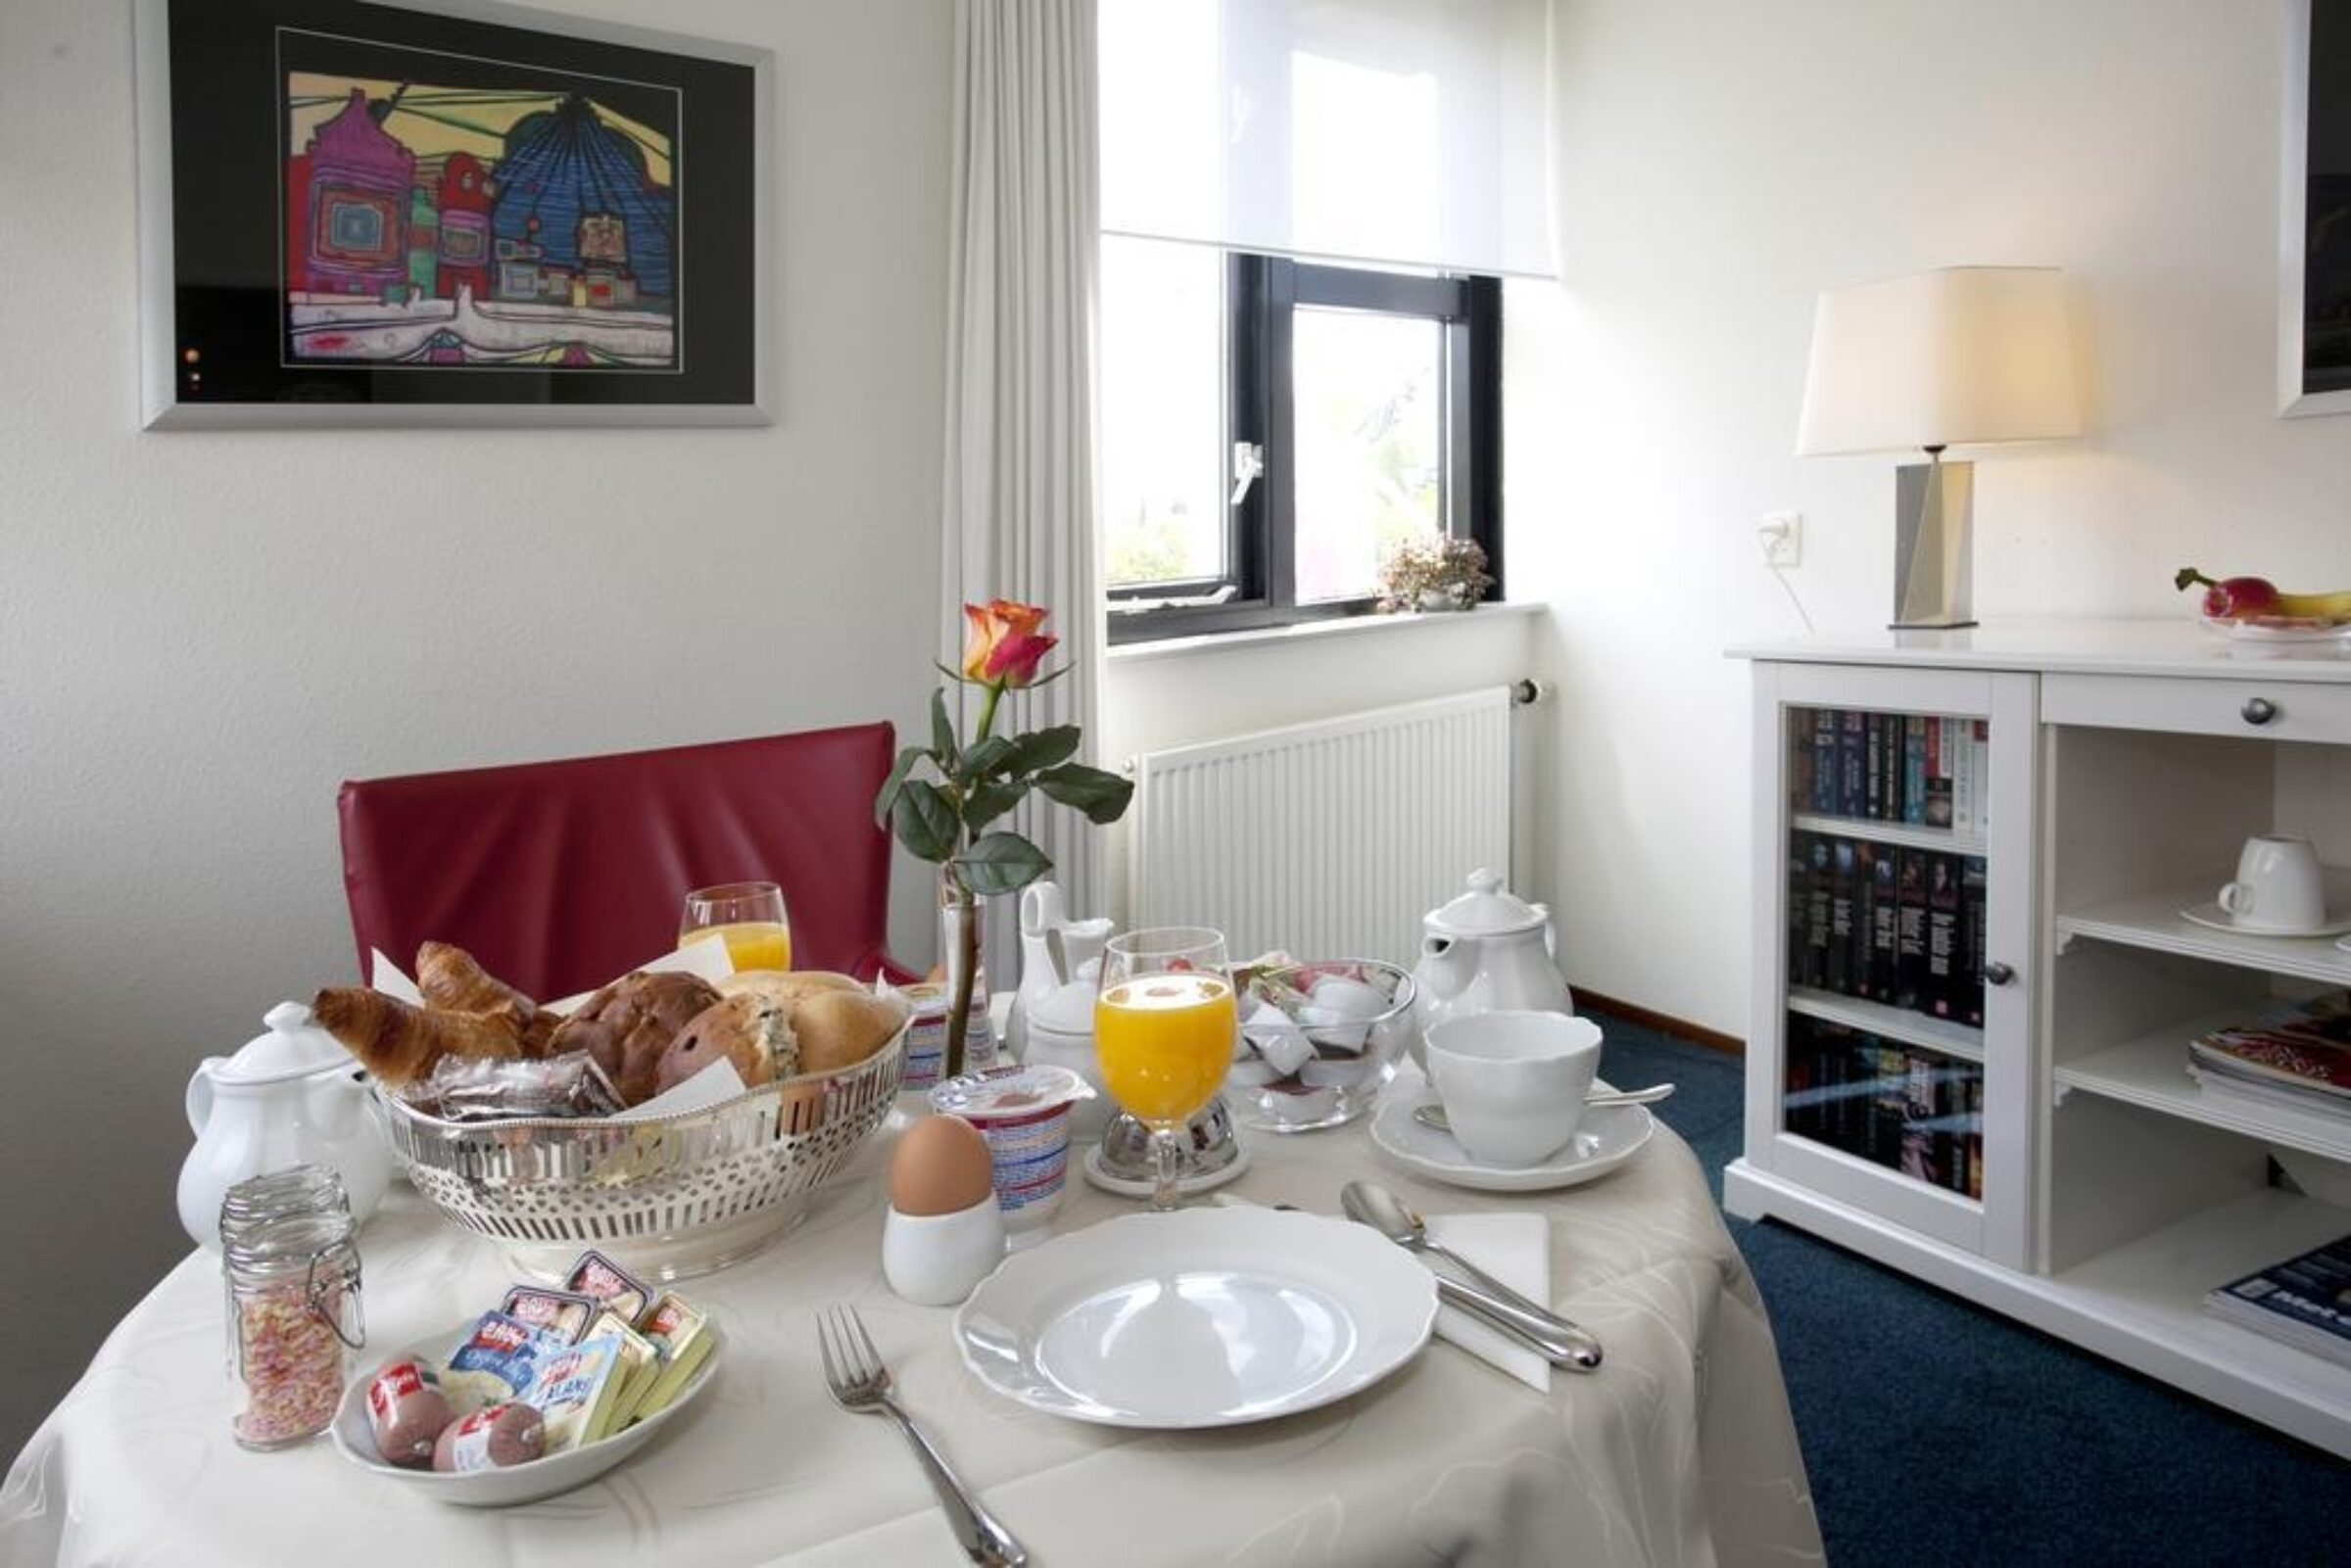 Bed breakfast Holter Enschede4